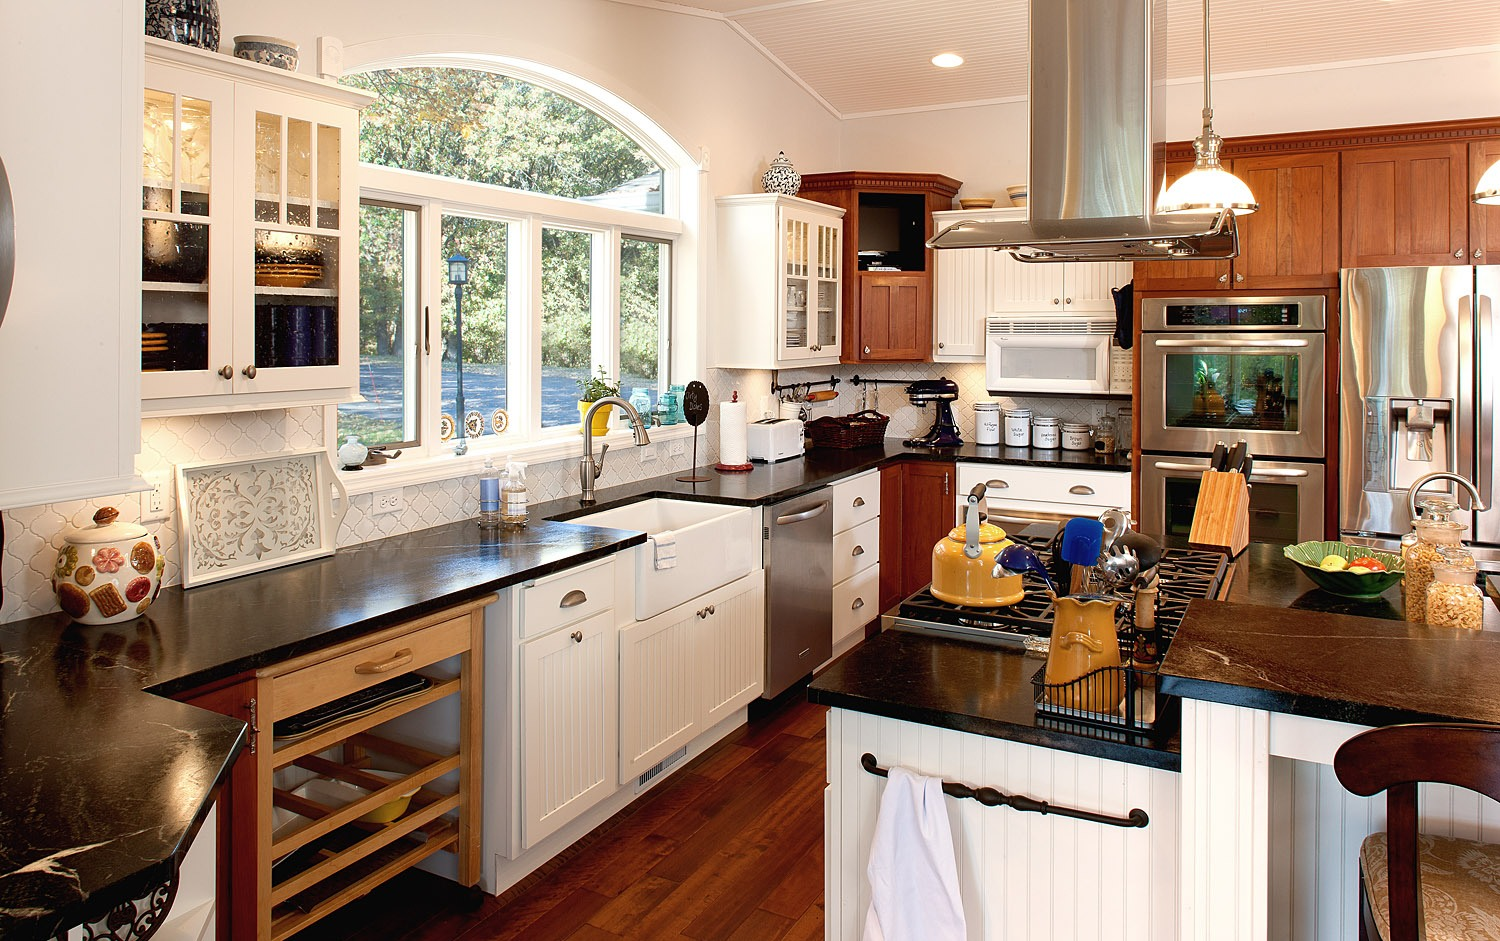 35 Beautiful Transitional Kitchen Examples for Your ...